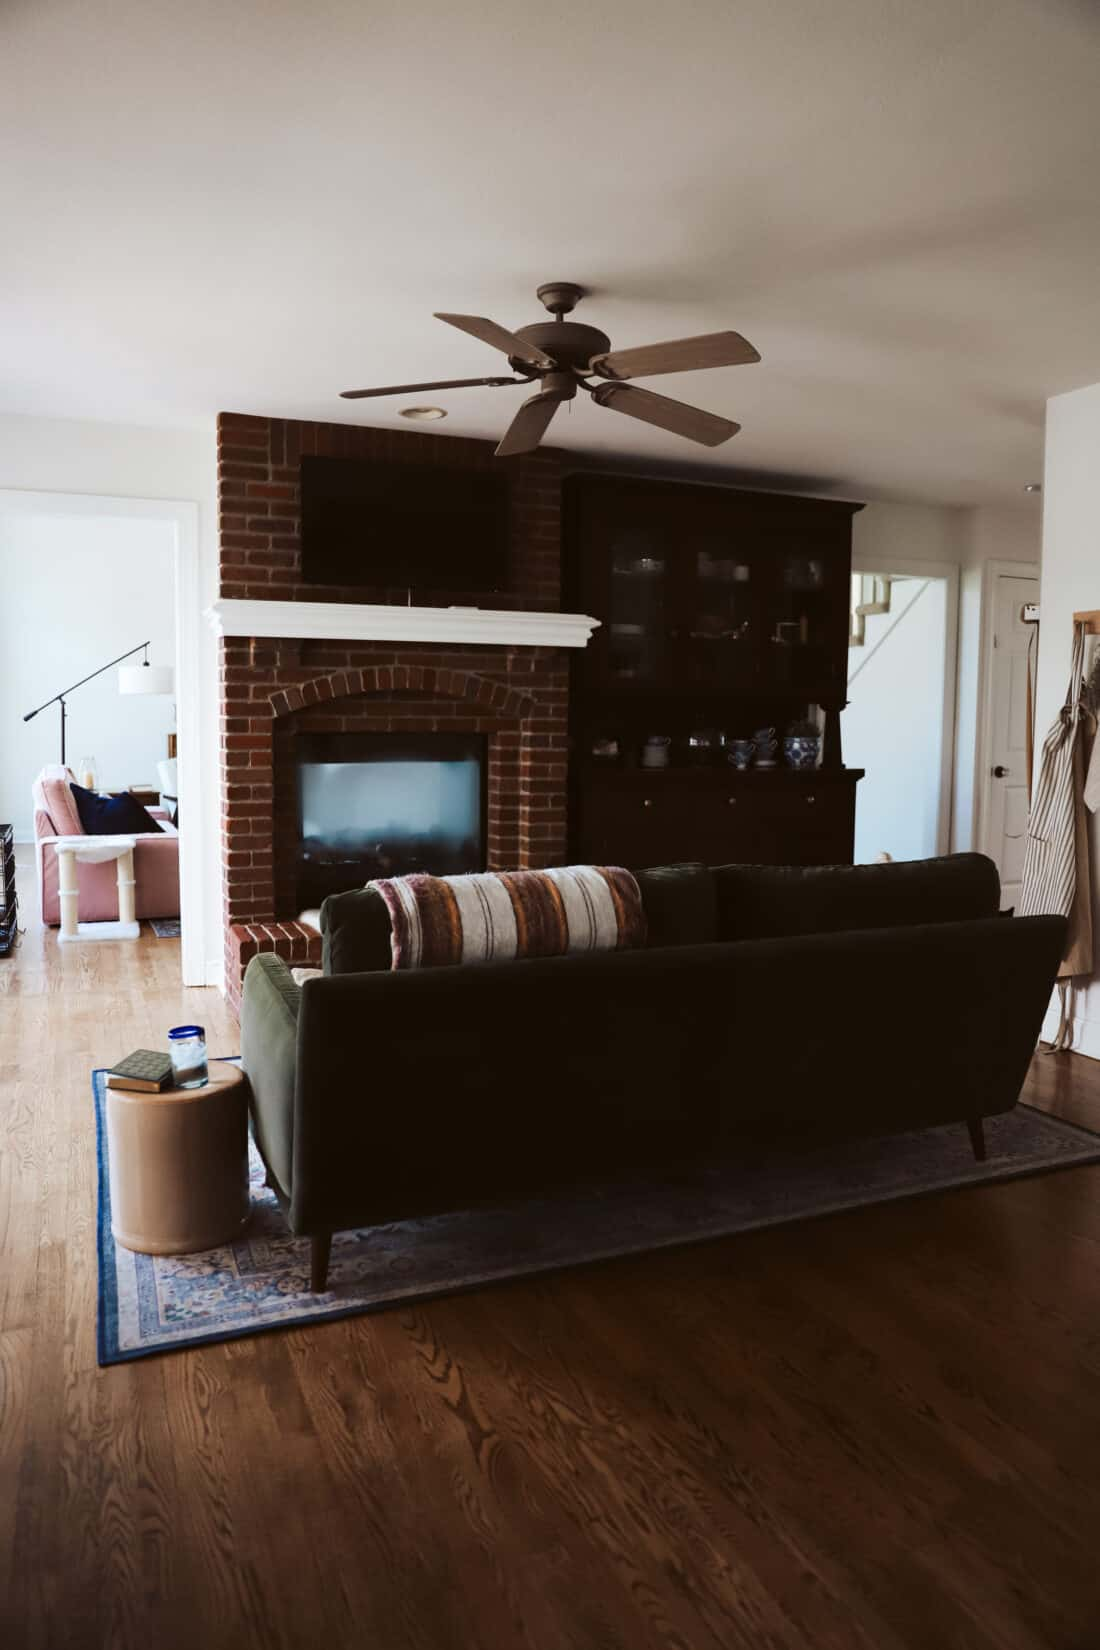 green velvet sofa in a keeping room with a red brick fireplace